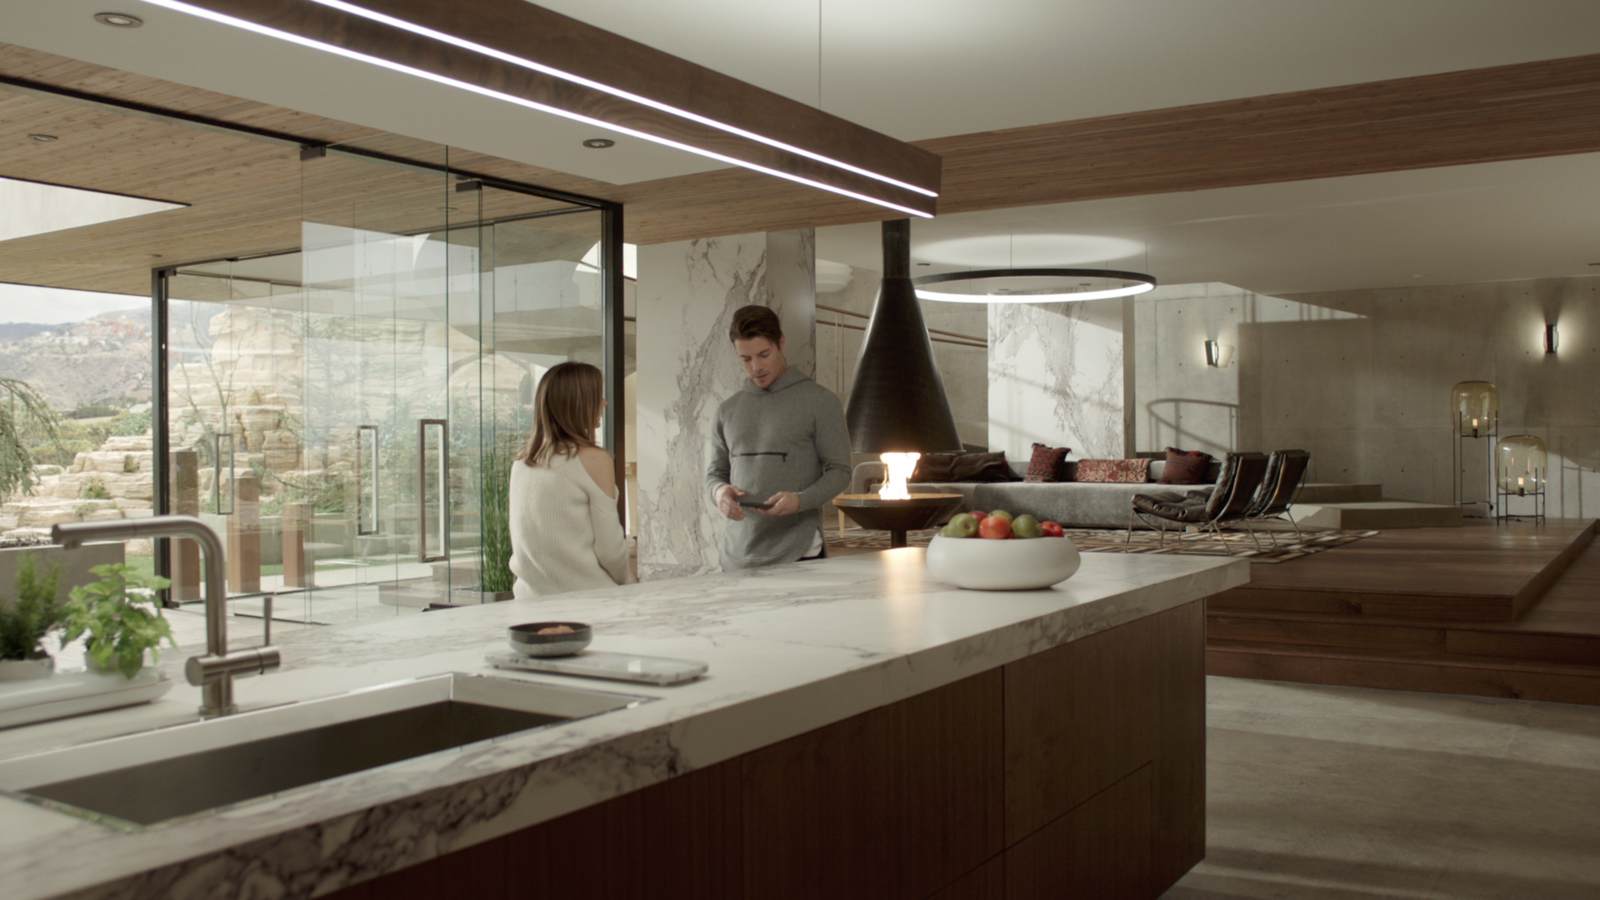 Kyle West and Megan Morrison, played by actress Christine Evangelista, have a conversation in the kitchen, which boasts walnut veneers. The glass panels that offer  Photo 8 of 10 in Here's How Hollywood Builds a Malibu Dream Home—on a Vancouver Soundstage